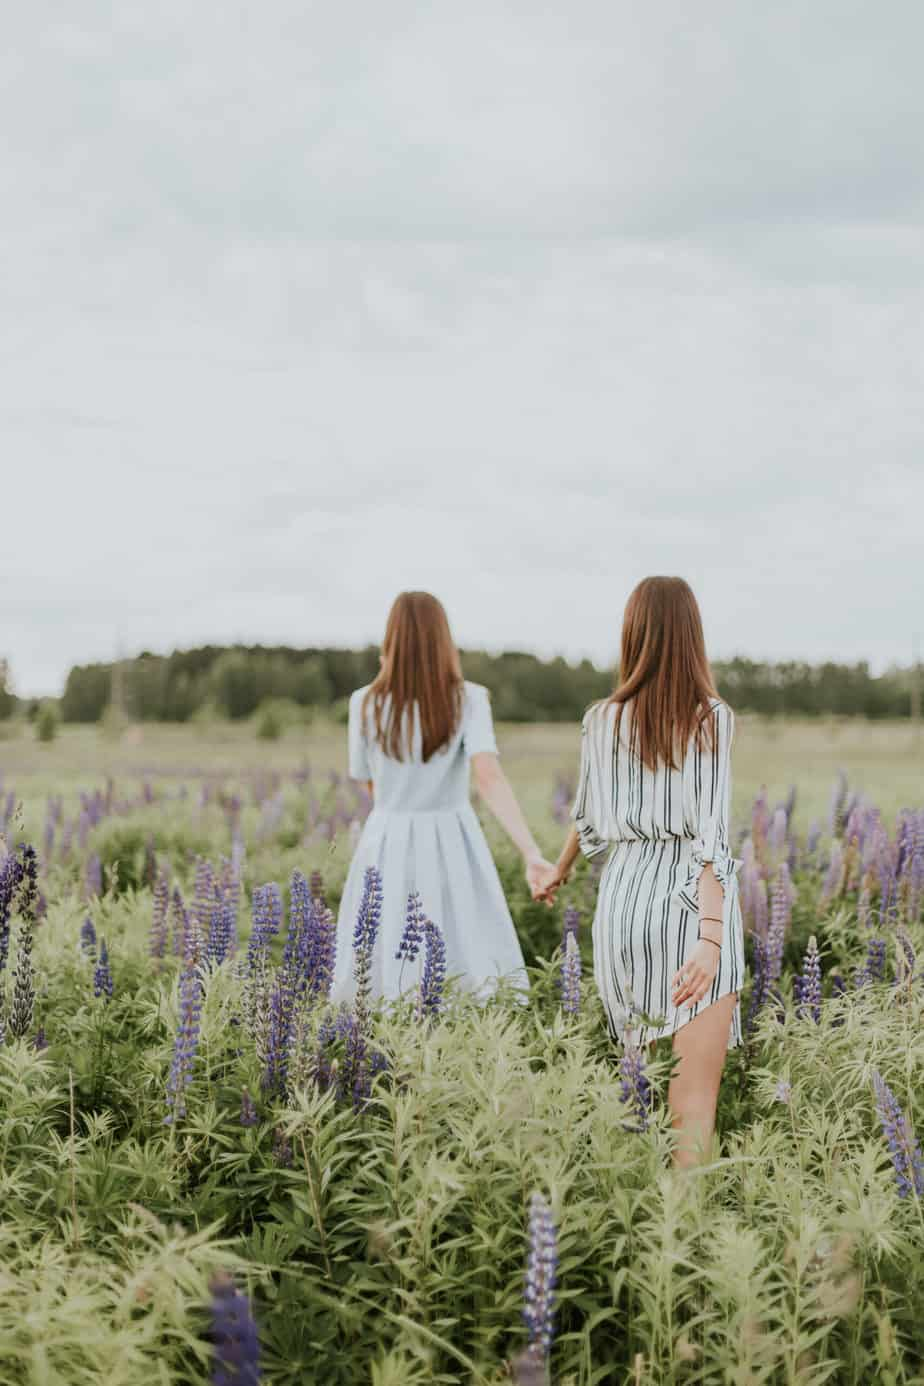 How to Let Go of the Past : 15 Powerful Steps to Take